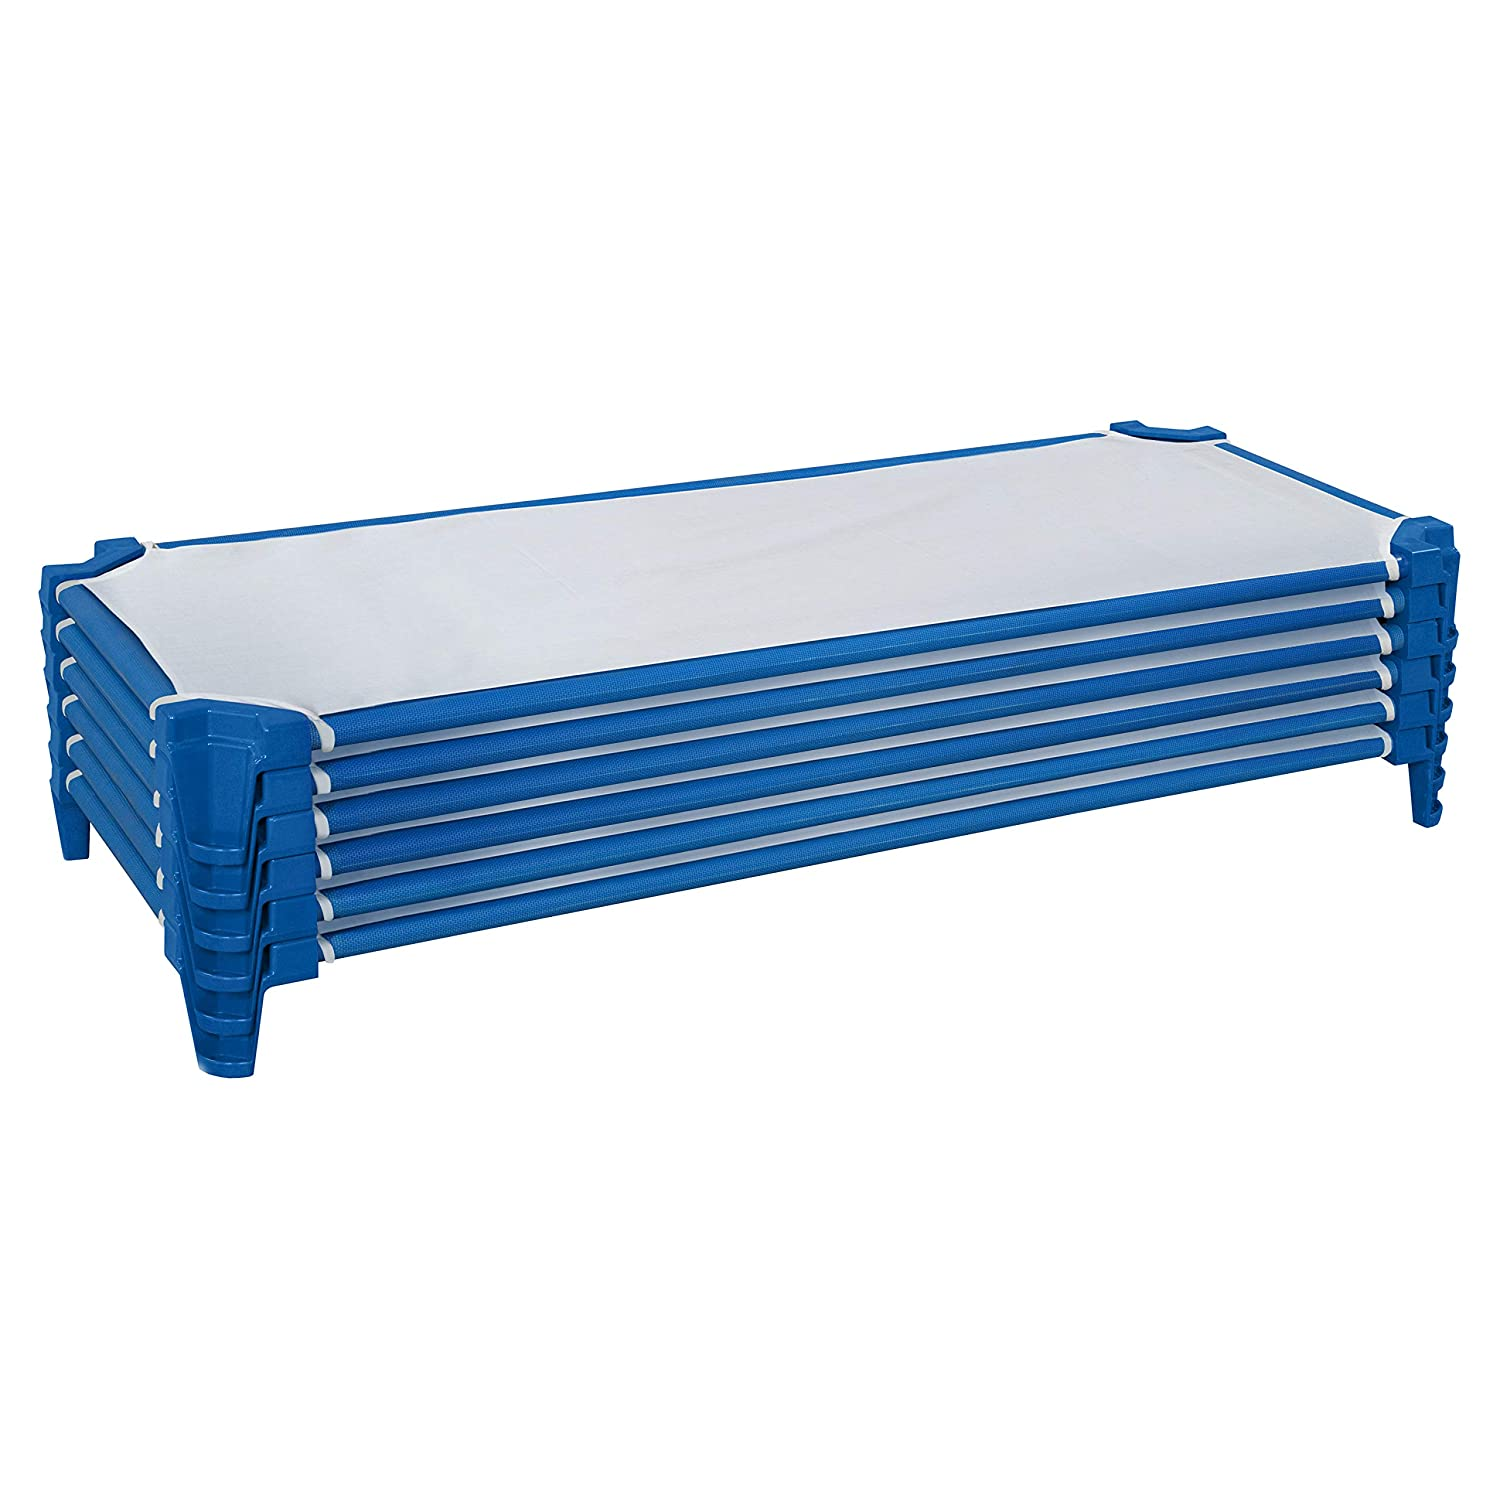 Wood Designs Stackable Daycare Cots for Kids with Sheets, 52